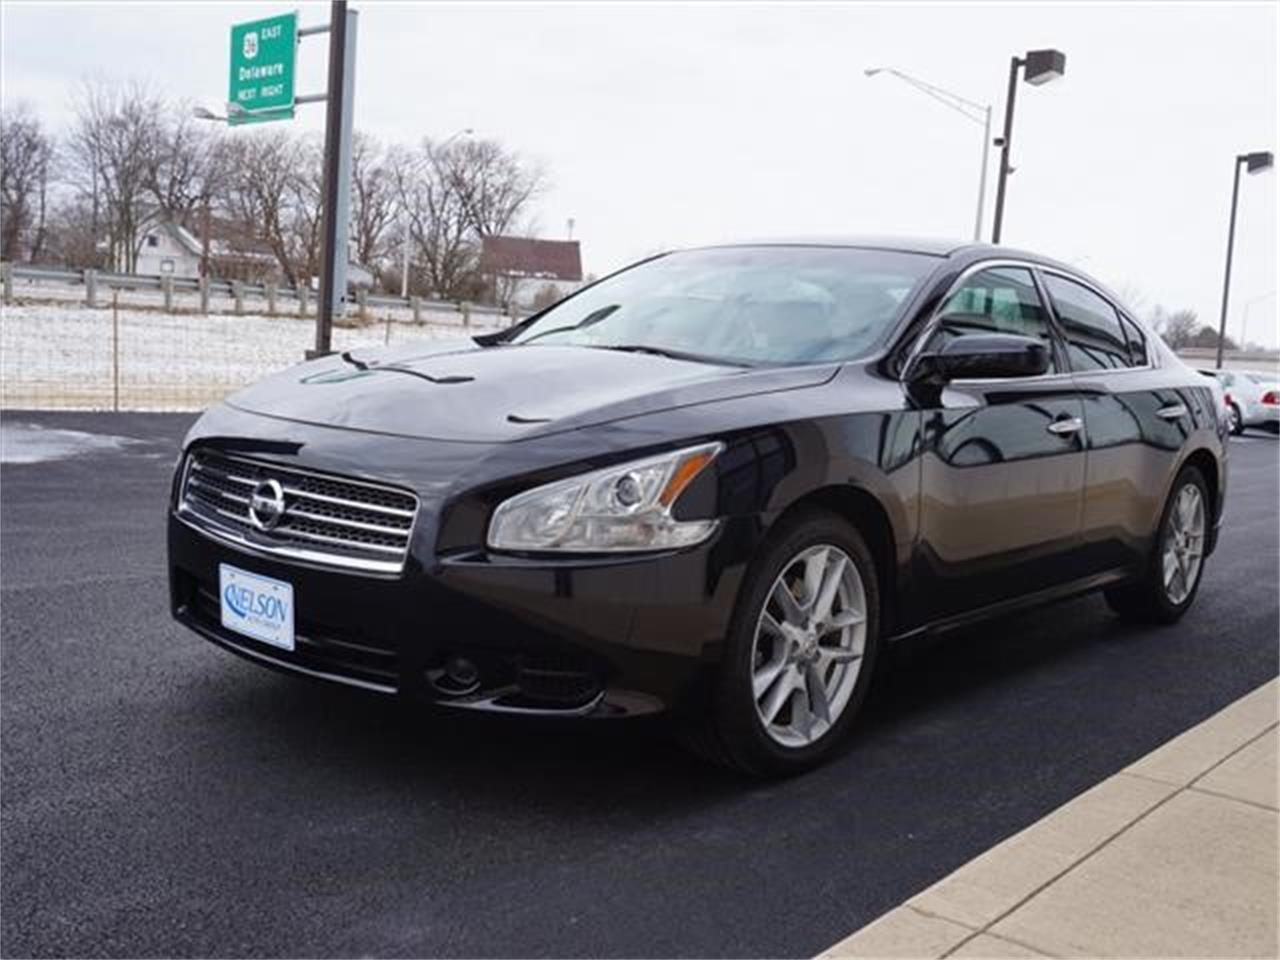 Large Picture of 2010 Nissan Maxima - $9,999.00 Offered by Nelson Automotive, Ltd. - KHAD